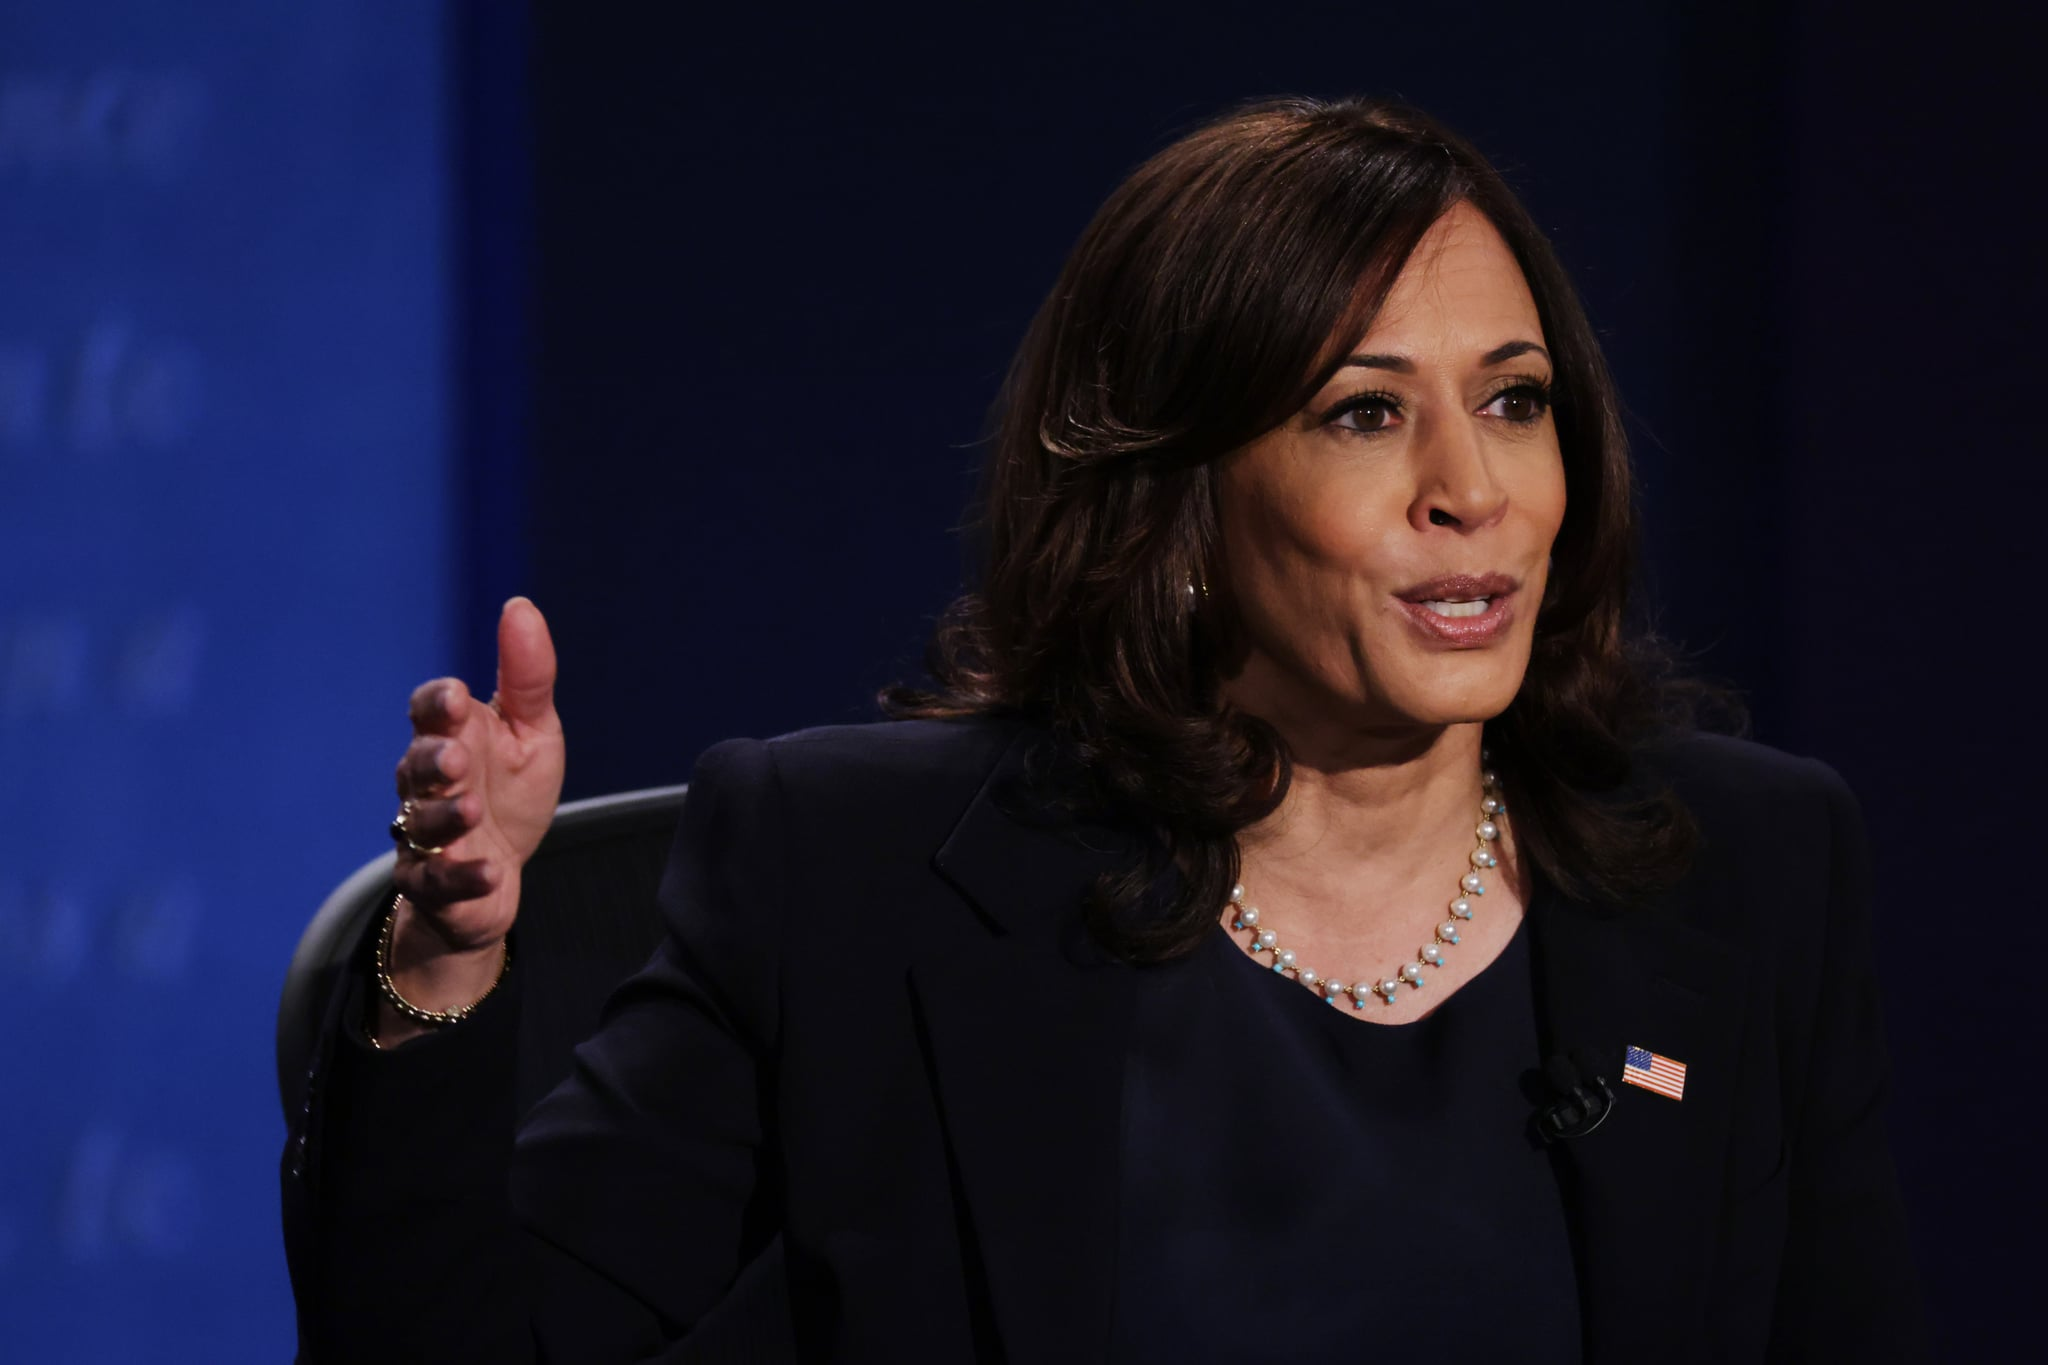 SALT LAKE CITY, UTAH - OCTOBER 07: Democratic vice presidential nominee Sen. Kamala Harris (D-CA) participates in the vice presidential debate against U.S. Vice President Mike Pence at the University of Utah on October 7, 2020 in Salt Lake City, Utah. The vice presidential candidates only meet once to debate before the general election on November 3. (Photo by Alex Wong/Getty Images)